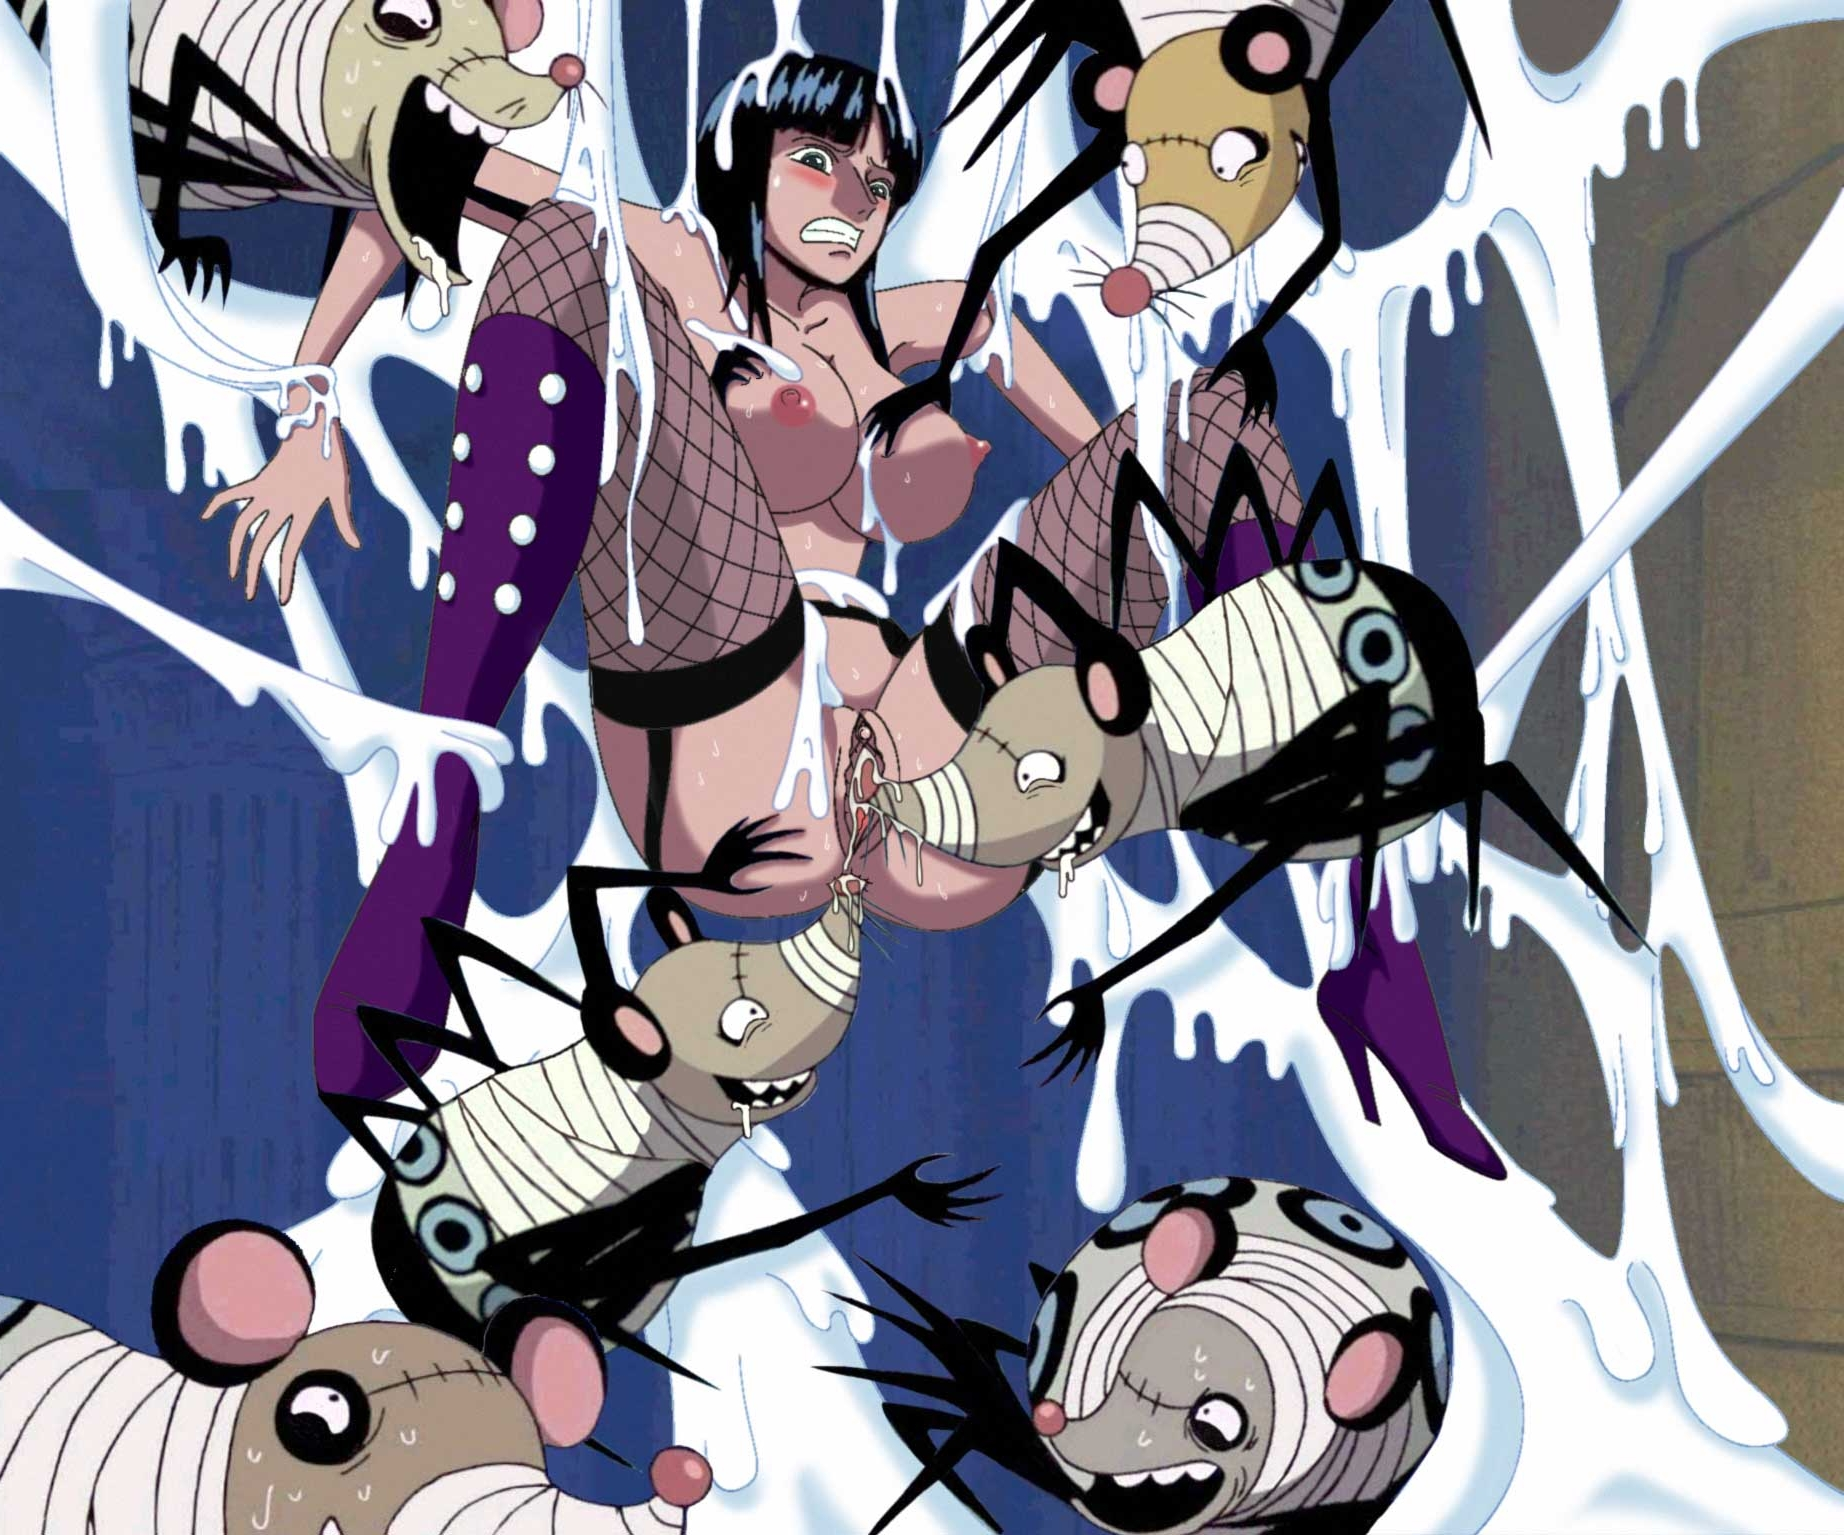 Magna hentai picture ##000130100497 zoofilia blush boots breasts cap ...: onepiecehentai.org/sex-pics/magna-hentai-picture-000130100497...